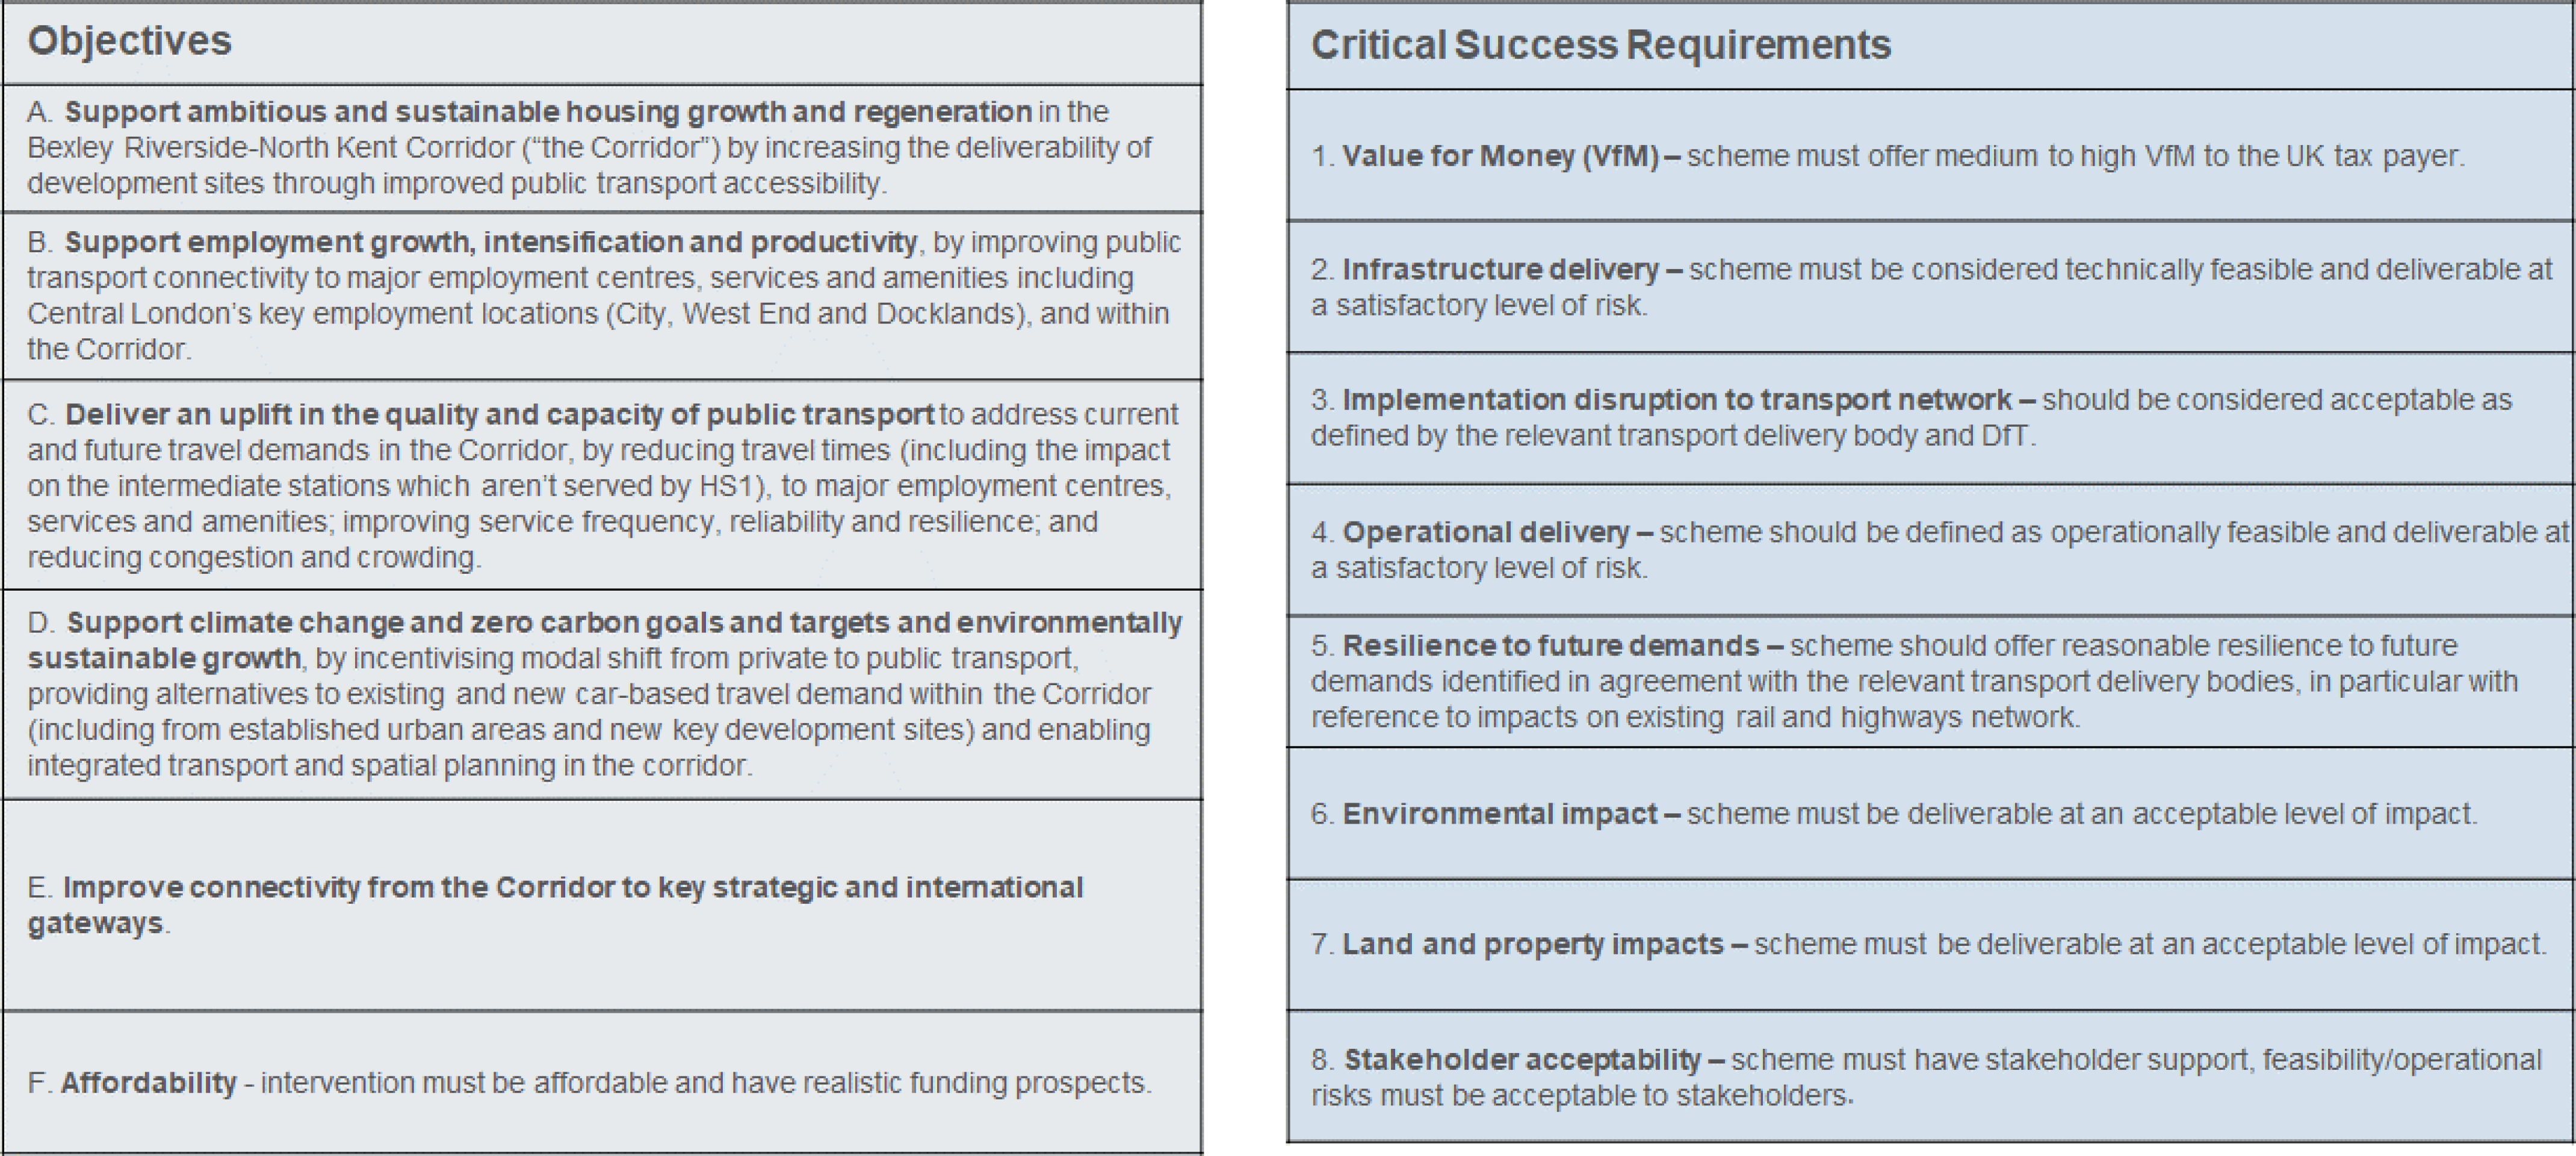 Image showing the strategic objectives and critical success requirements for the study